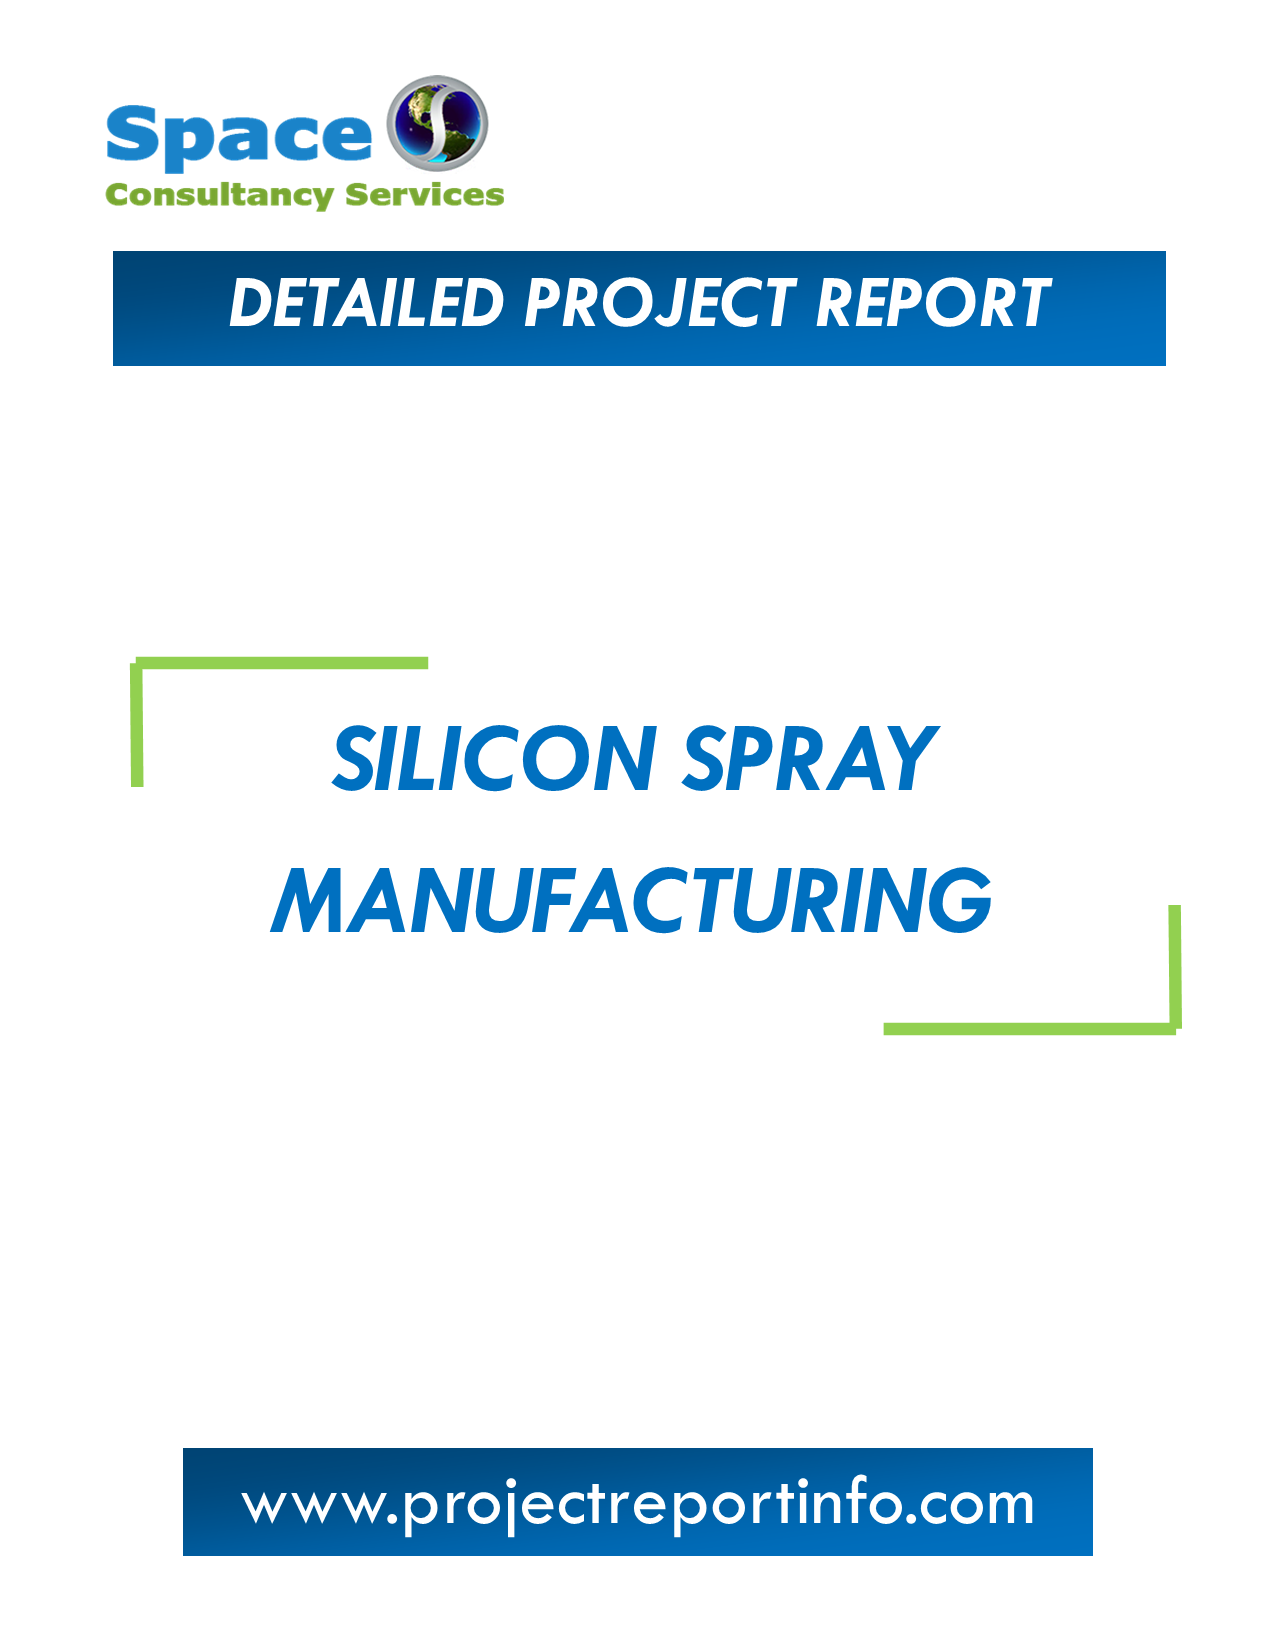 Project Report on Silicon Spray Manufacturing